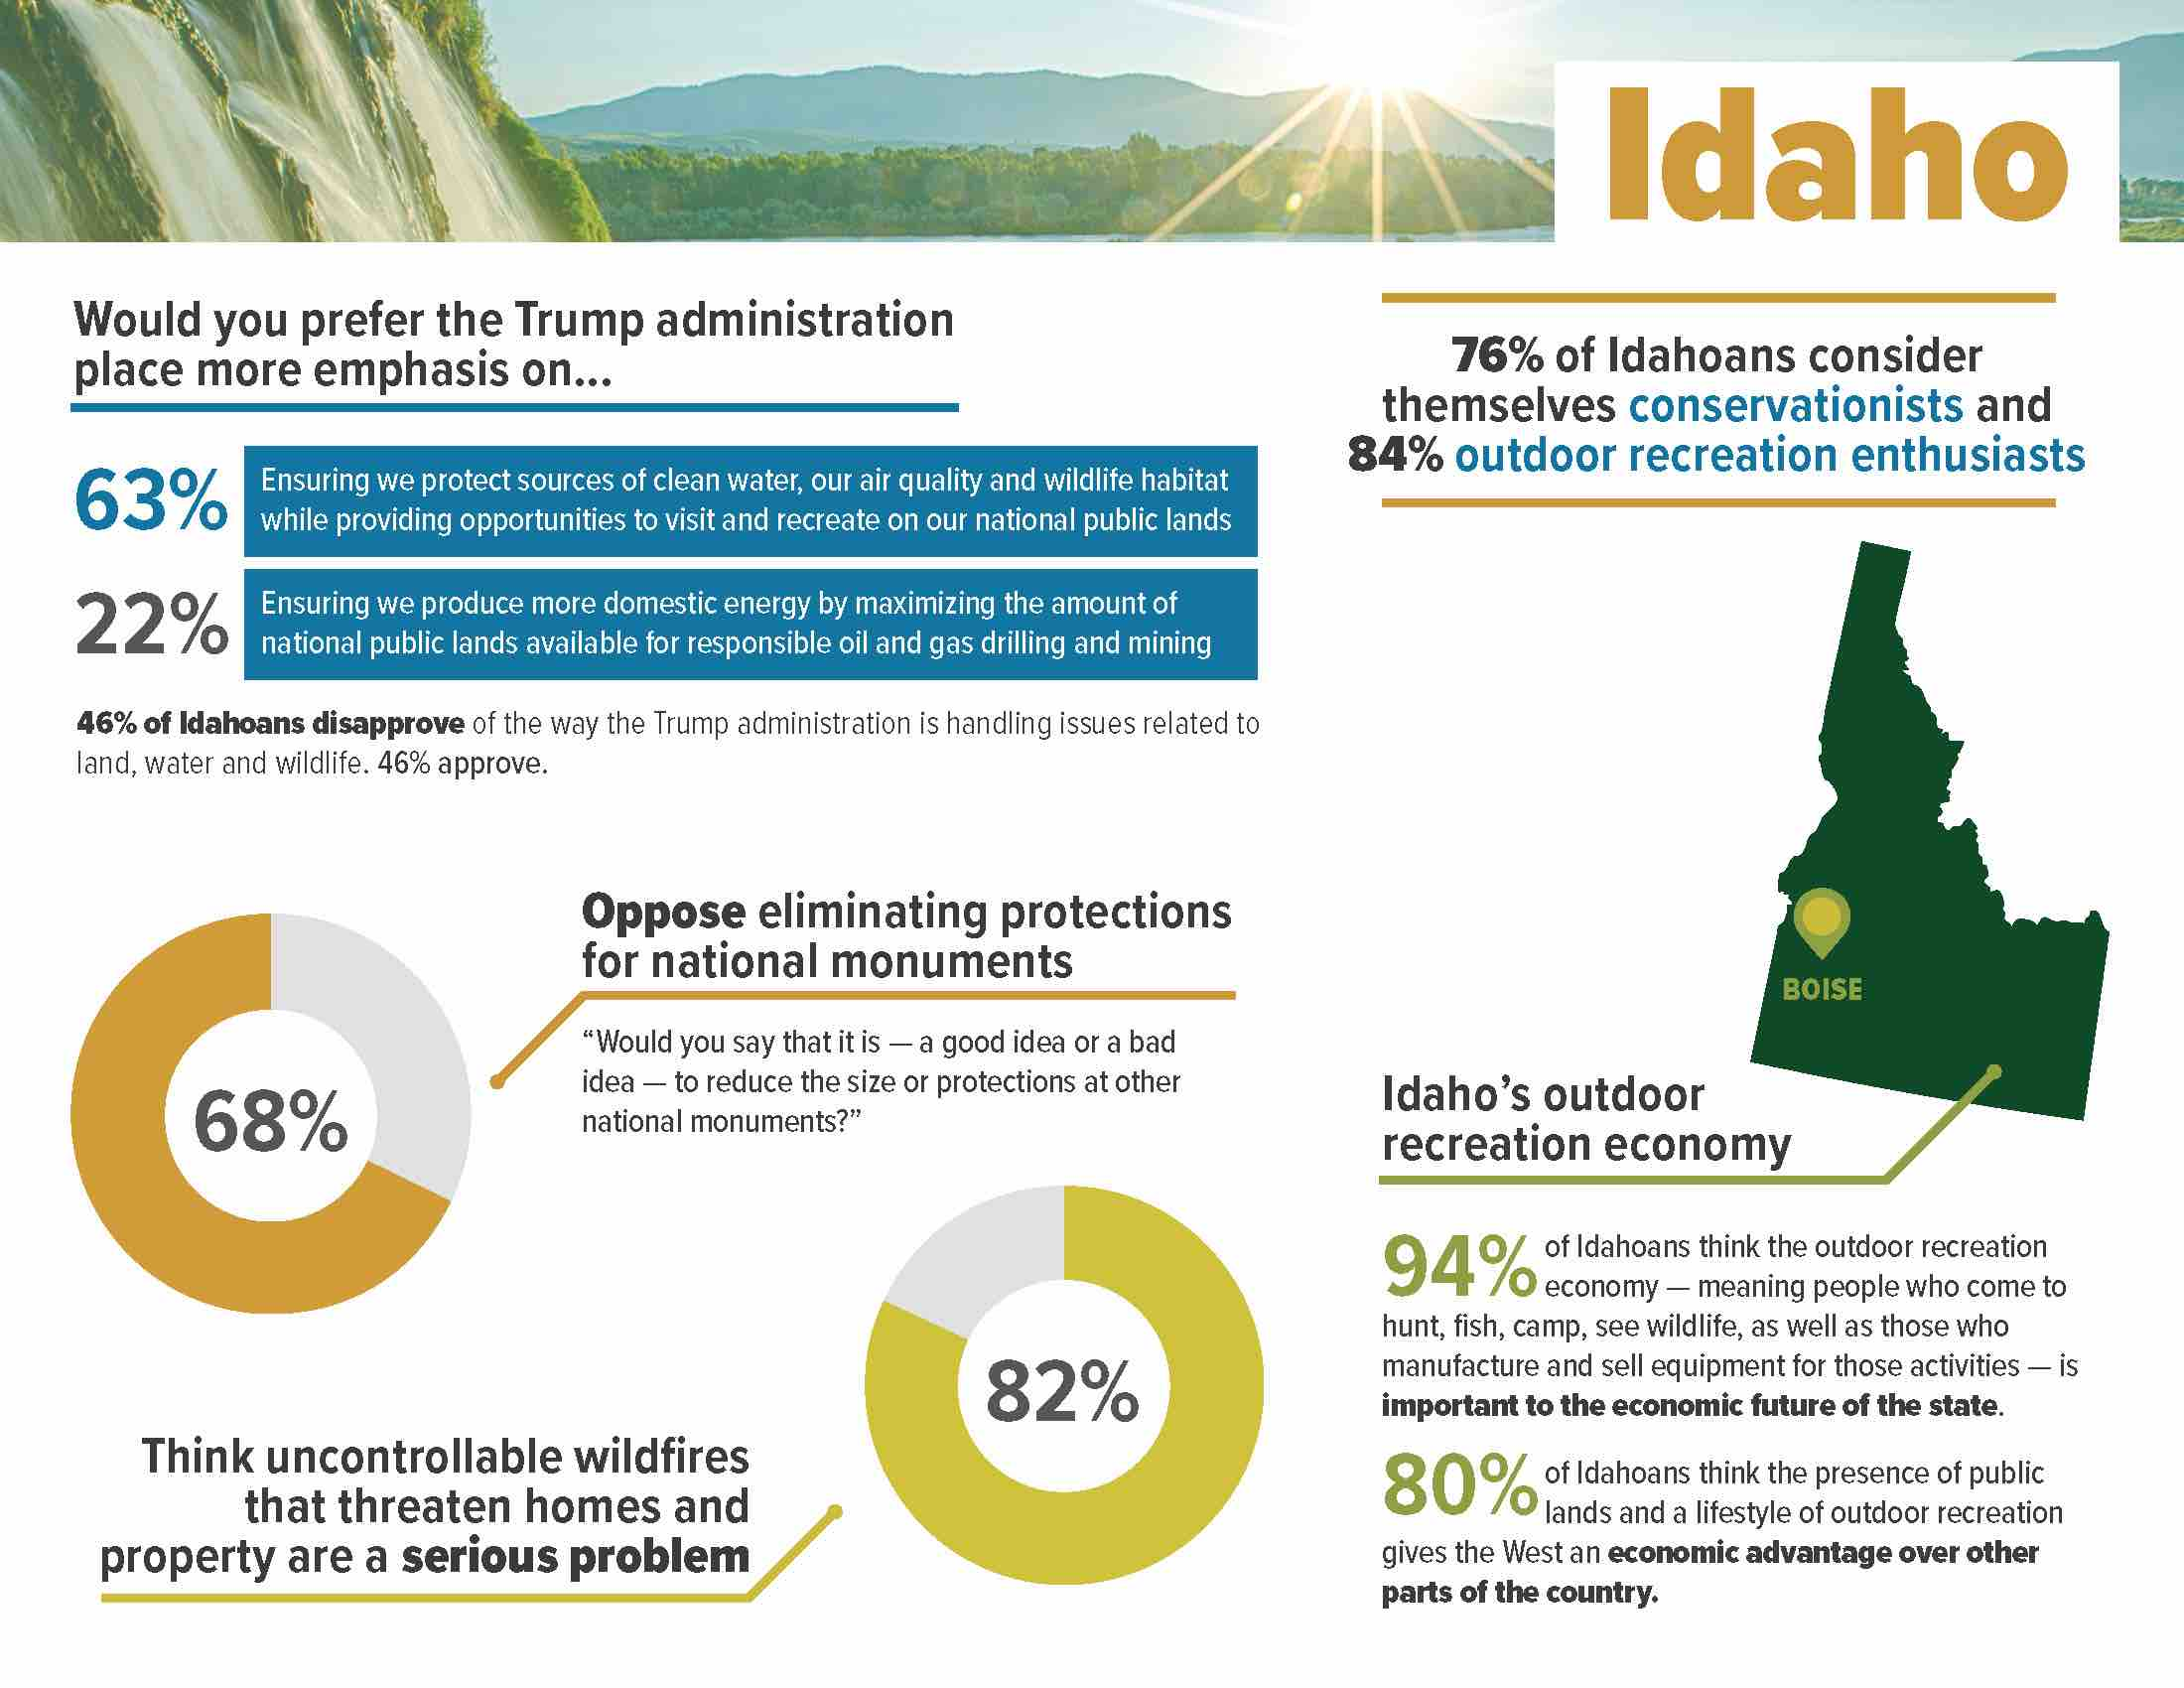 ConservationintheWest_2018__StateFactSheet_Idaho